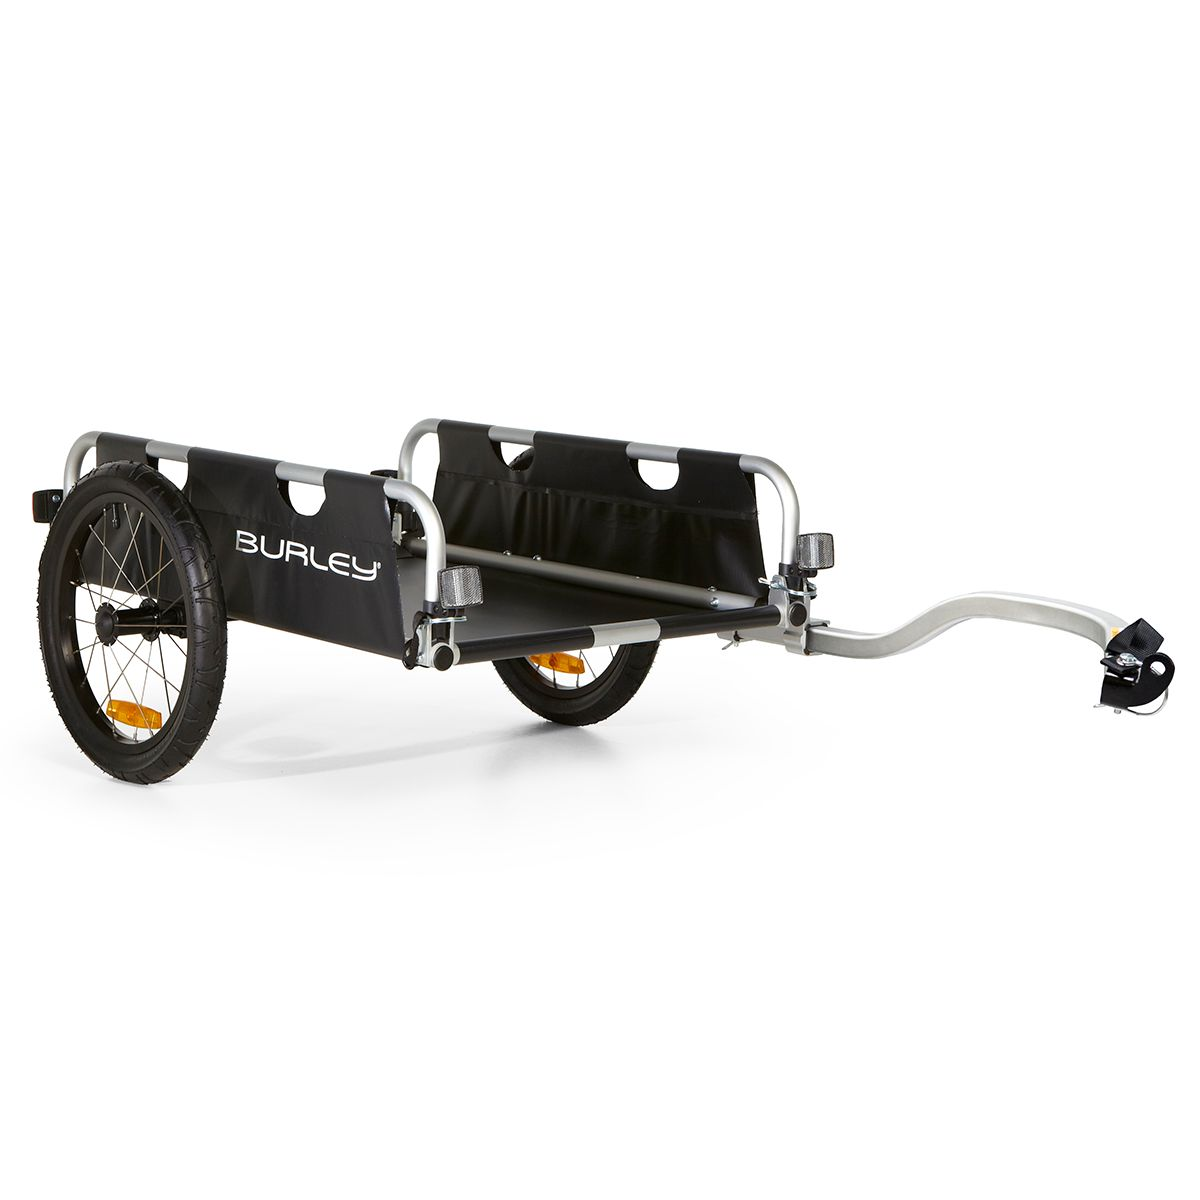 Burley FLATBED bicycle trailer | bike_trailers_component